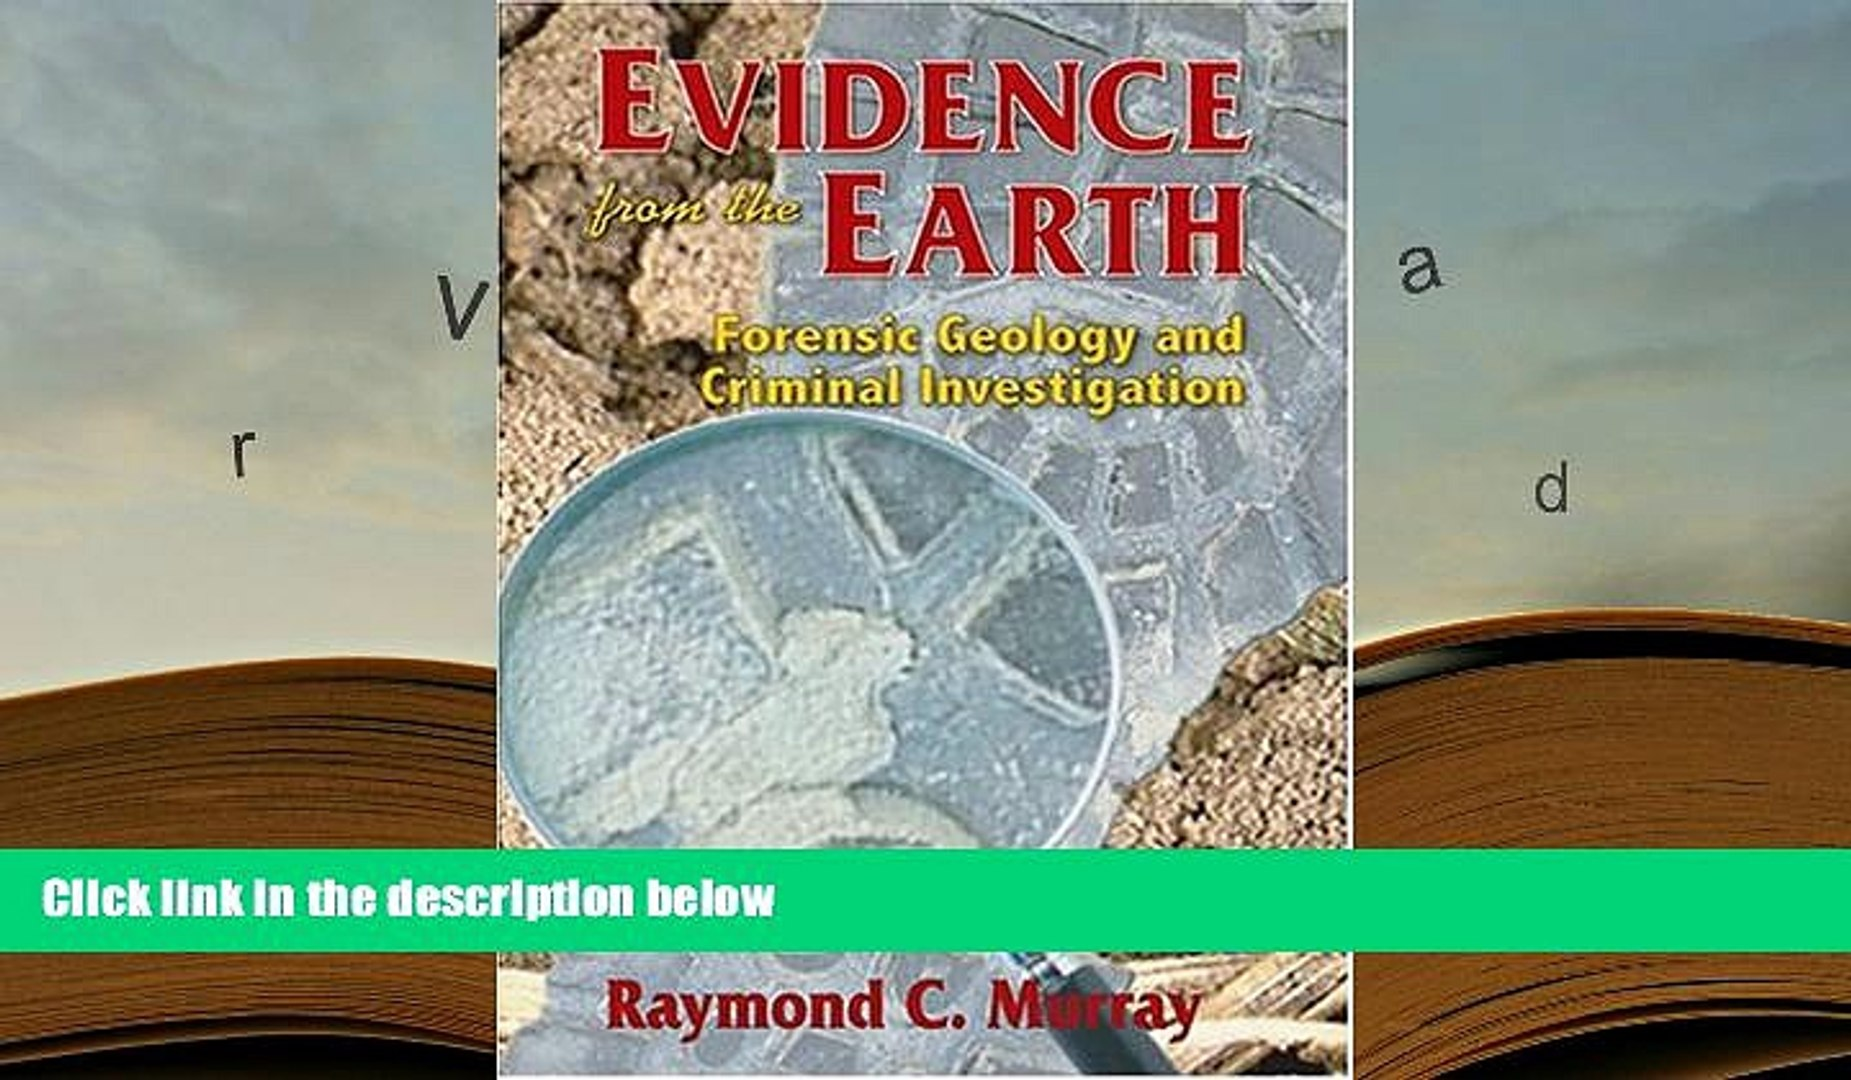 Pdf Free Download Evidence From The Earth Forensic Geology And Criminal Investigation For Ipad Video Dailymotion